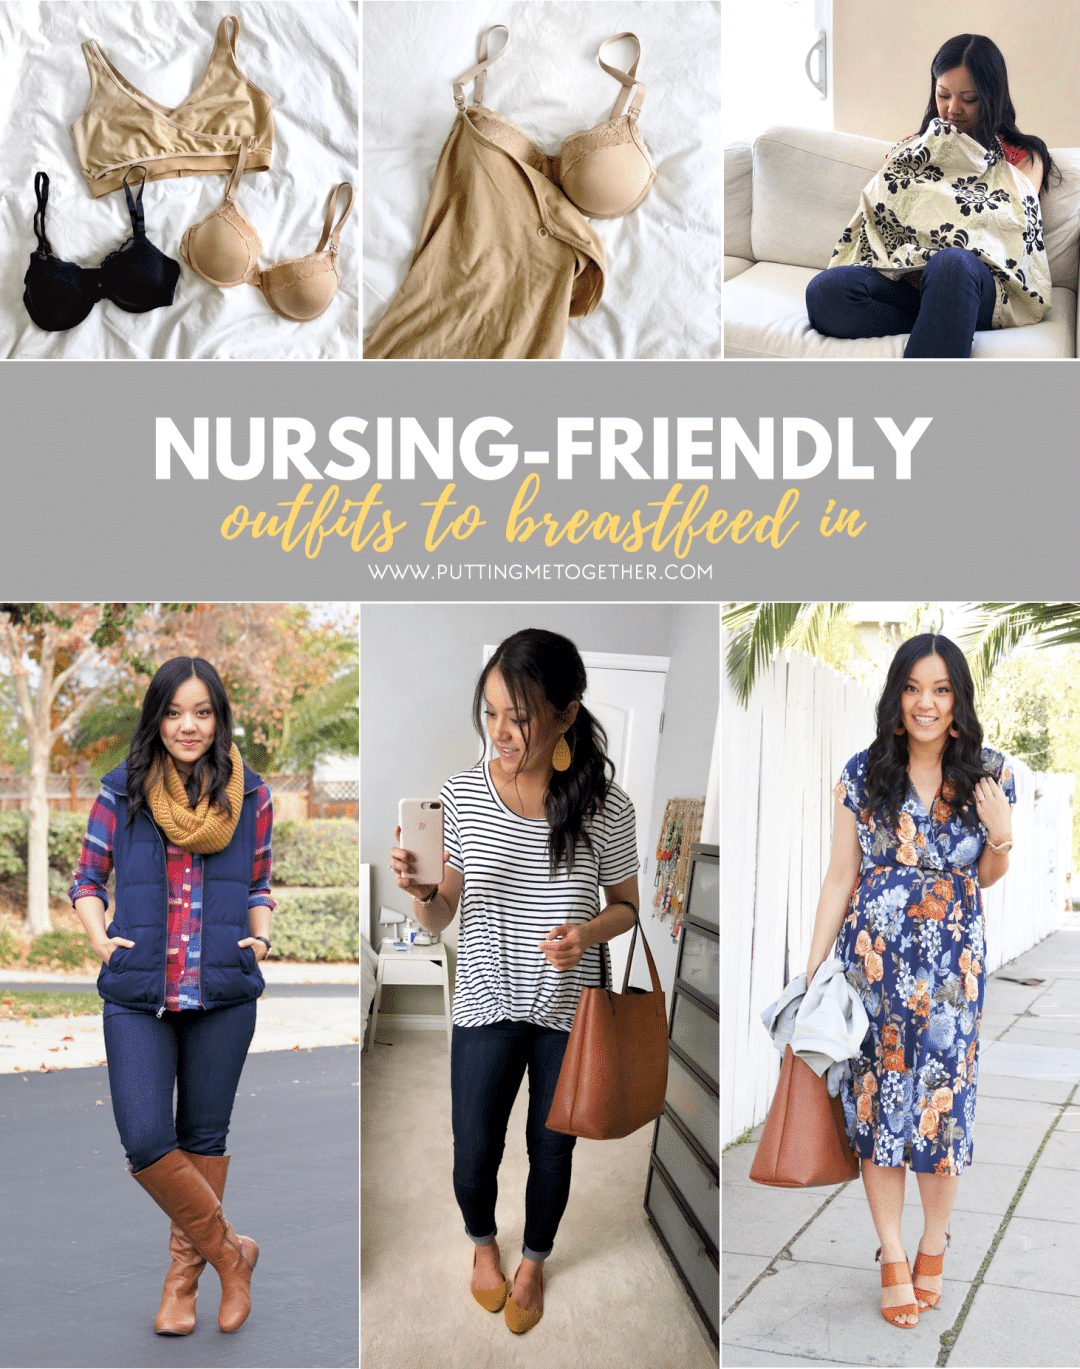 Nursing Friendly Outfits to Breastfeed In